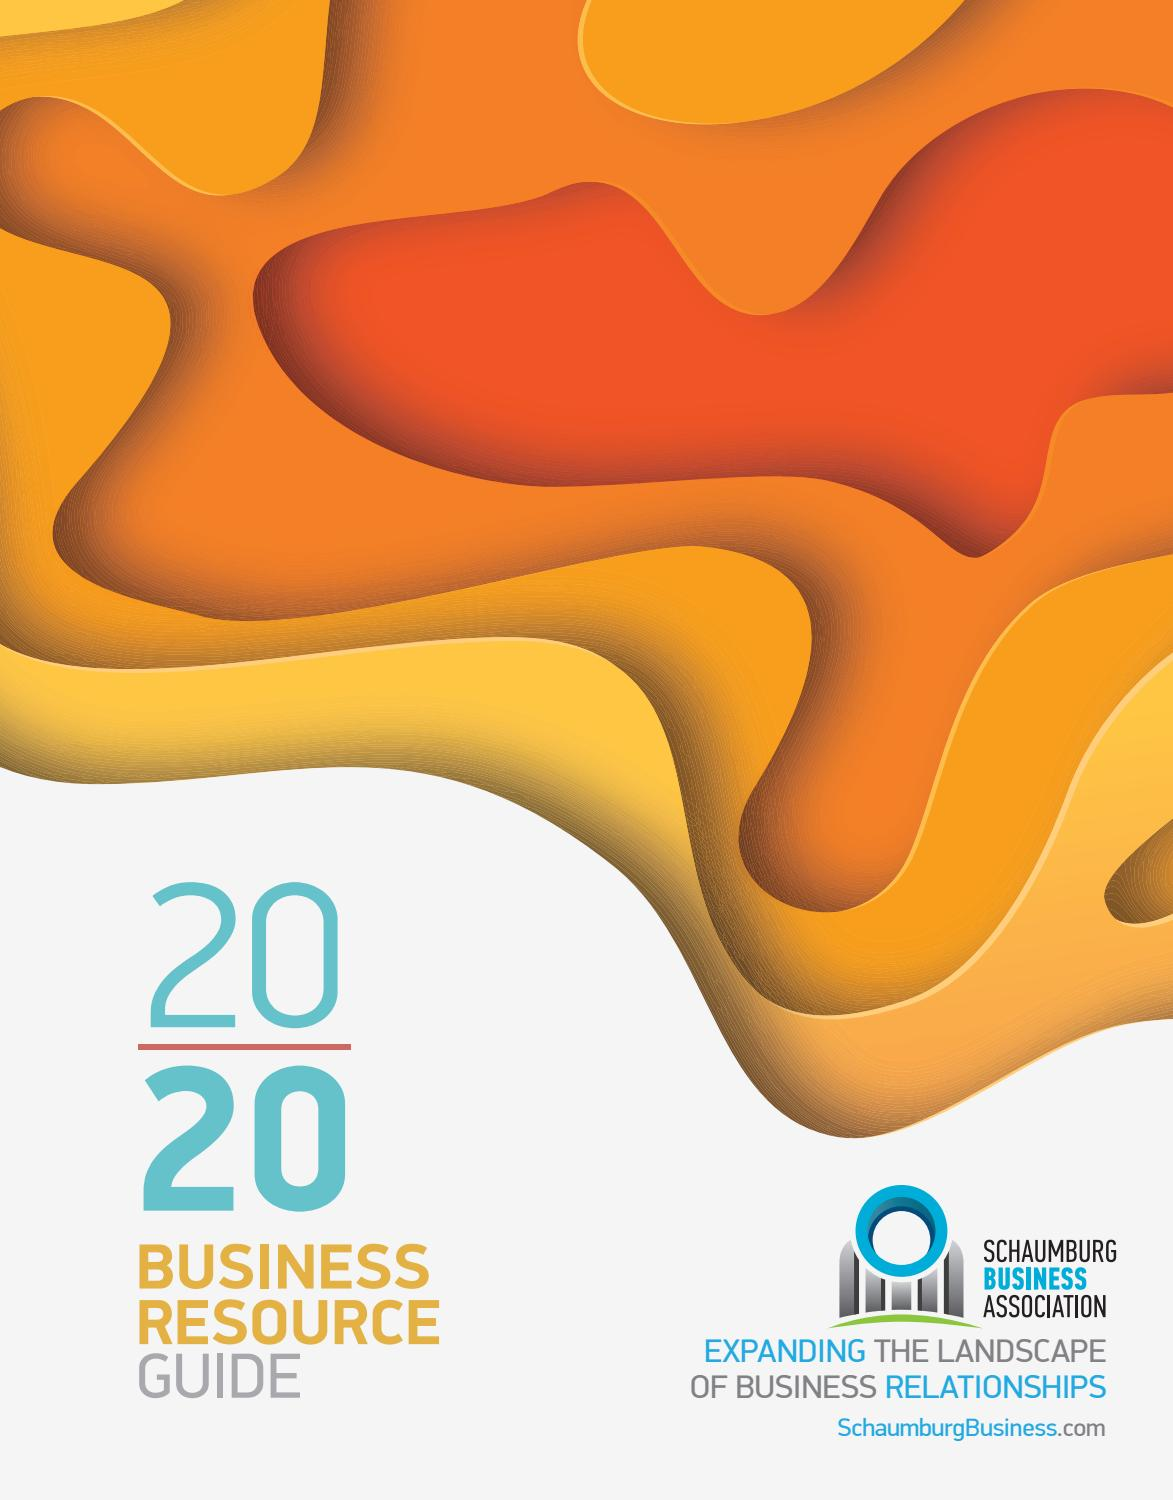 Schaumburg Business Association 2020 by Town Square Publications, LLC -  issuu